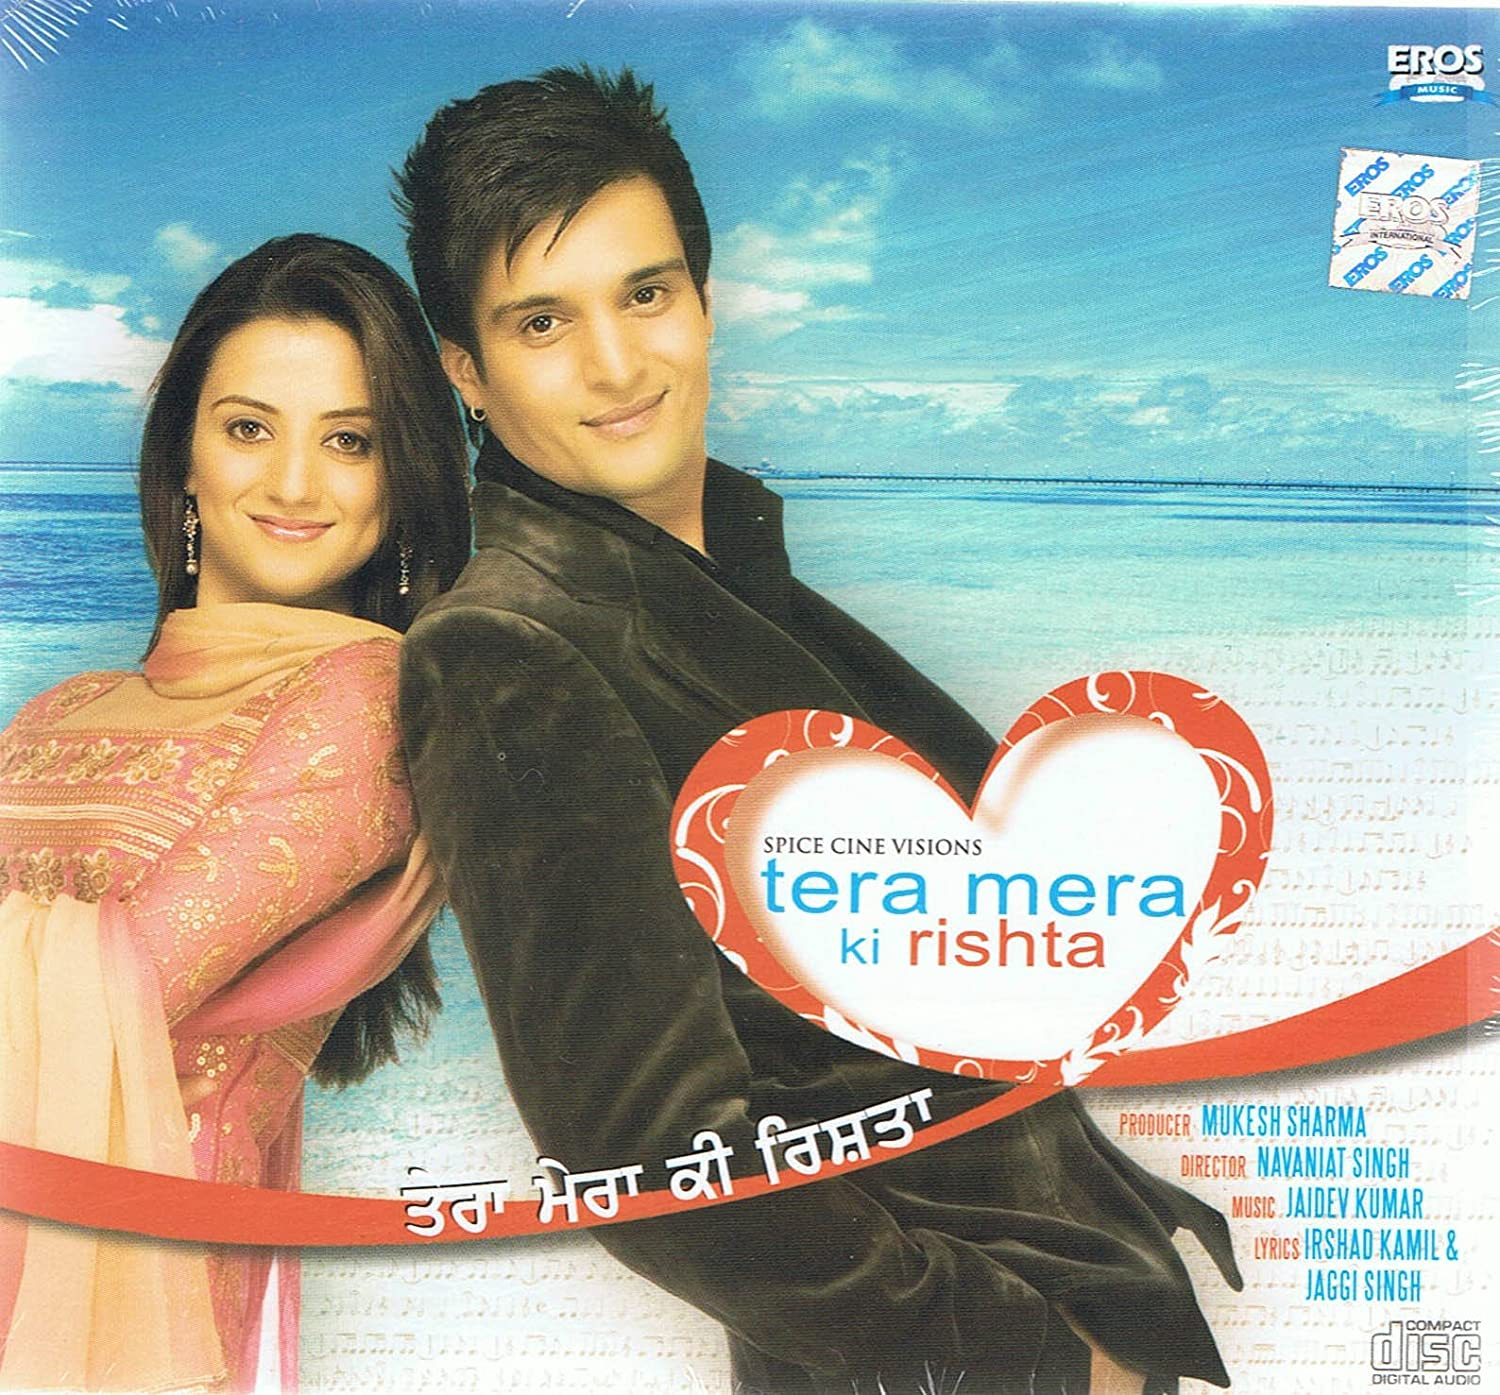 Russia Punjabi Song Download: Tera Mera Ki Rishta Punjabi Movie Songs Download Free